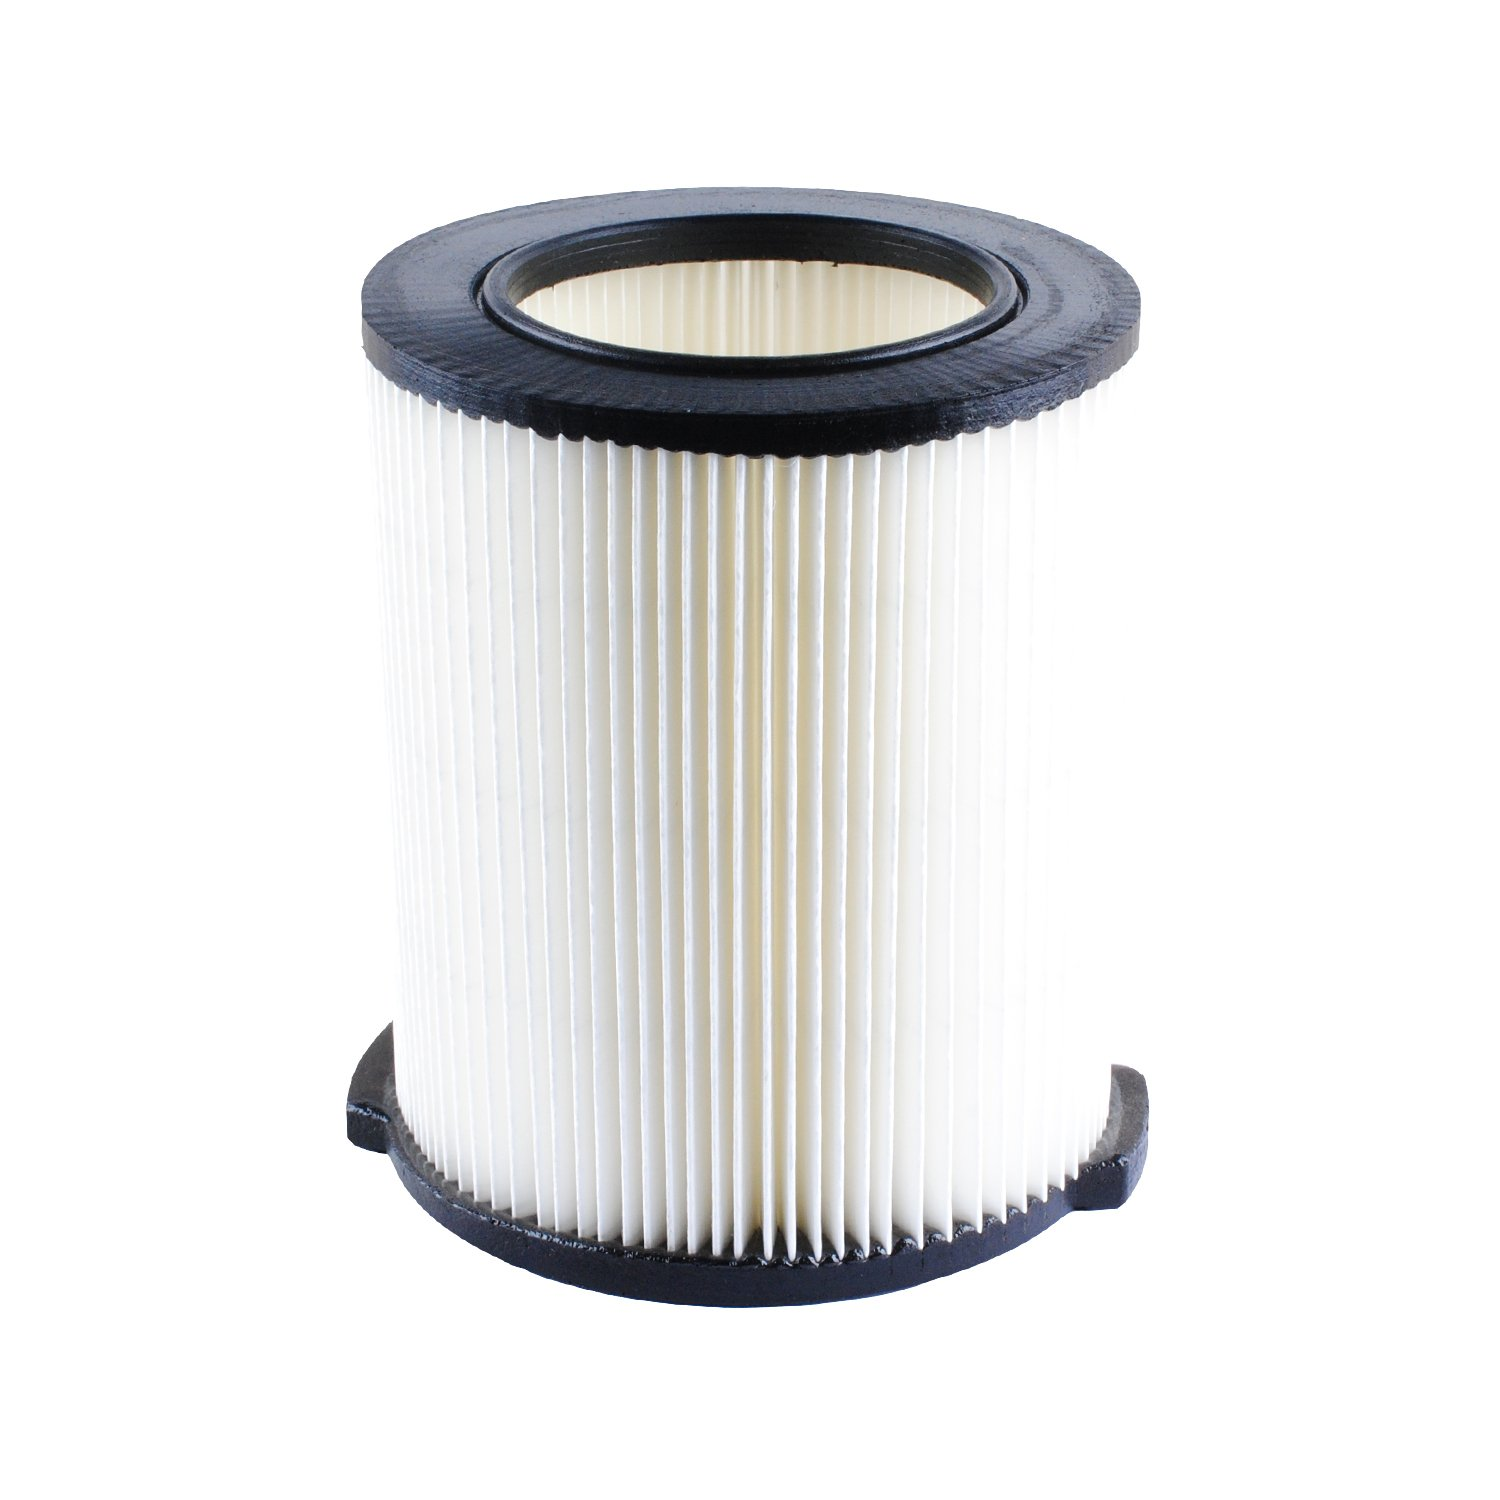 VF4000 Replacement Filter for Ridgid 72947 Wet Dry Vac 5 to 20-Gallon 6-9 Gal Husky Craftsman 17816 Vacuum Compatible WD5500 WD0671 RV2400A RV2600B Washable & Reusable Replace Ridgid VF4000 Filter by Poweka